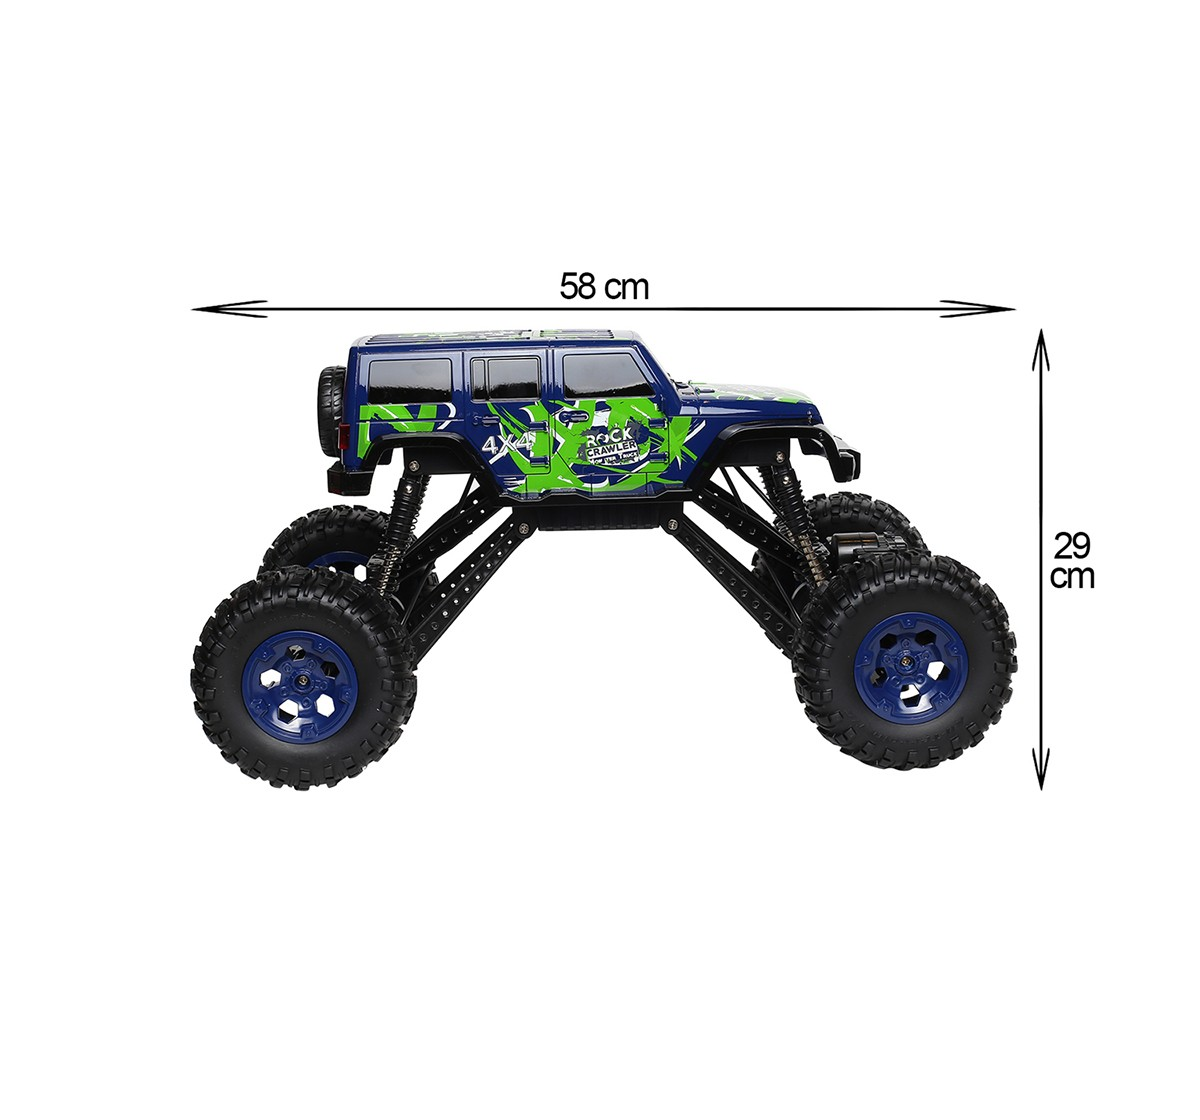 RW 1:10 4WD Monster Truck Rock Crawler Blue & Green Remote Control Toys for Kids age 8Y+ (Red)